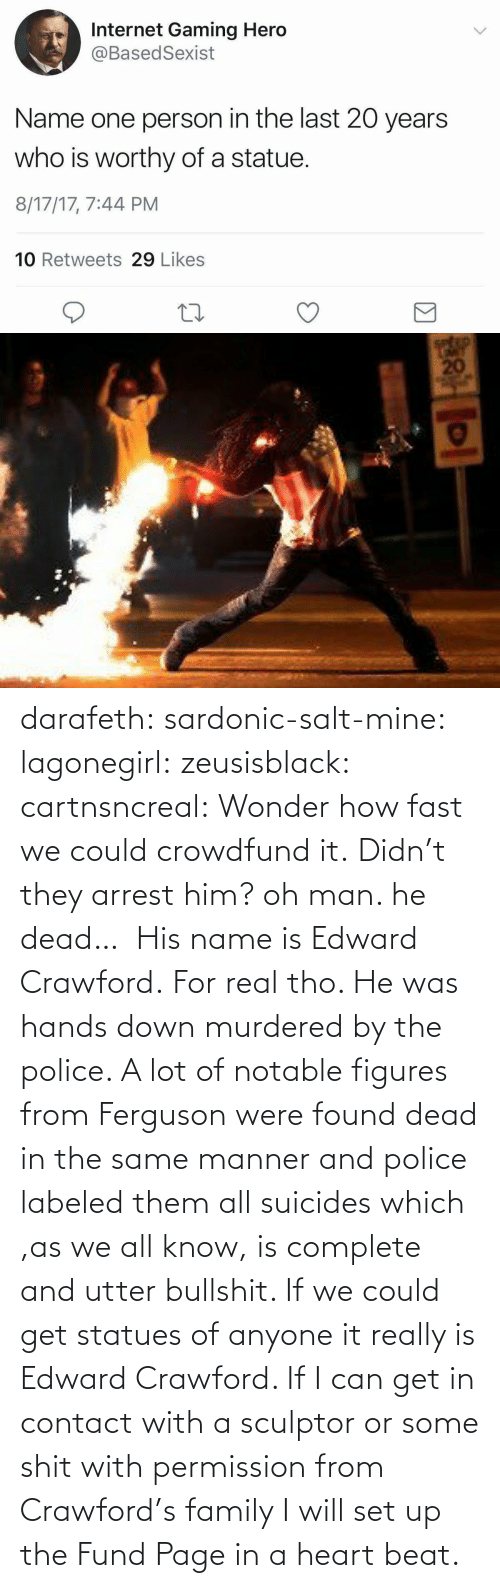 I Will: darafeth: sardonic-salt-mine:  lagonegirl:  zeusisblack:  cartnsncreal:   Wonder how fast we could crowdfund it.    Didn't they arrest him?  oh man. he dead…   His name is Edward Crawford.   For real tho. He was hands down murdered by the police. A lot of notable figures from Ferguson were found dead in the same manner and police labeled them all suicides which ,as we all know, is complete and utter bullshit.  If we could get statues of anyone it really is Edward Crawford. If I can get in contact with a sculptor or some shit with permission from Crawford's family I will set up the Fund Page in a heart beat.